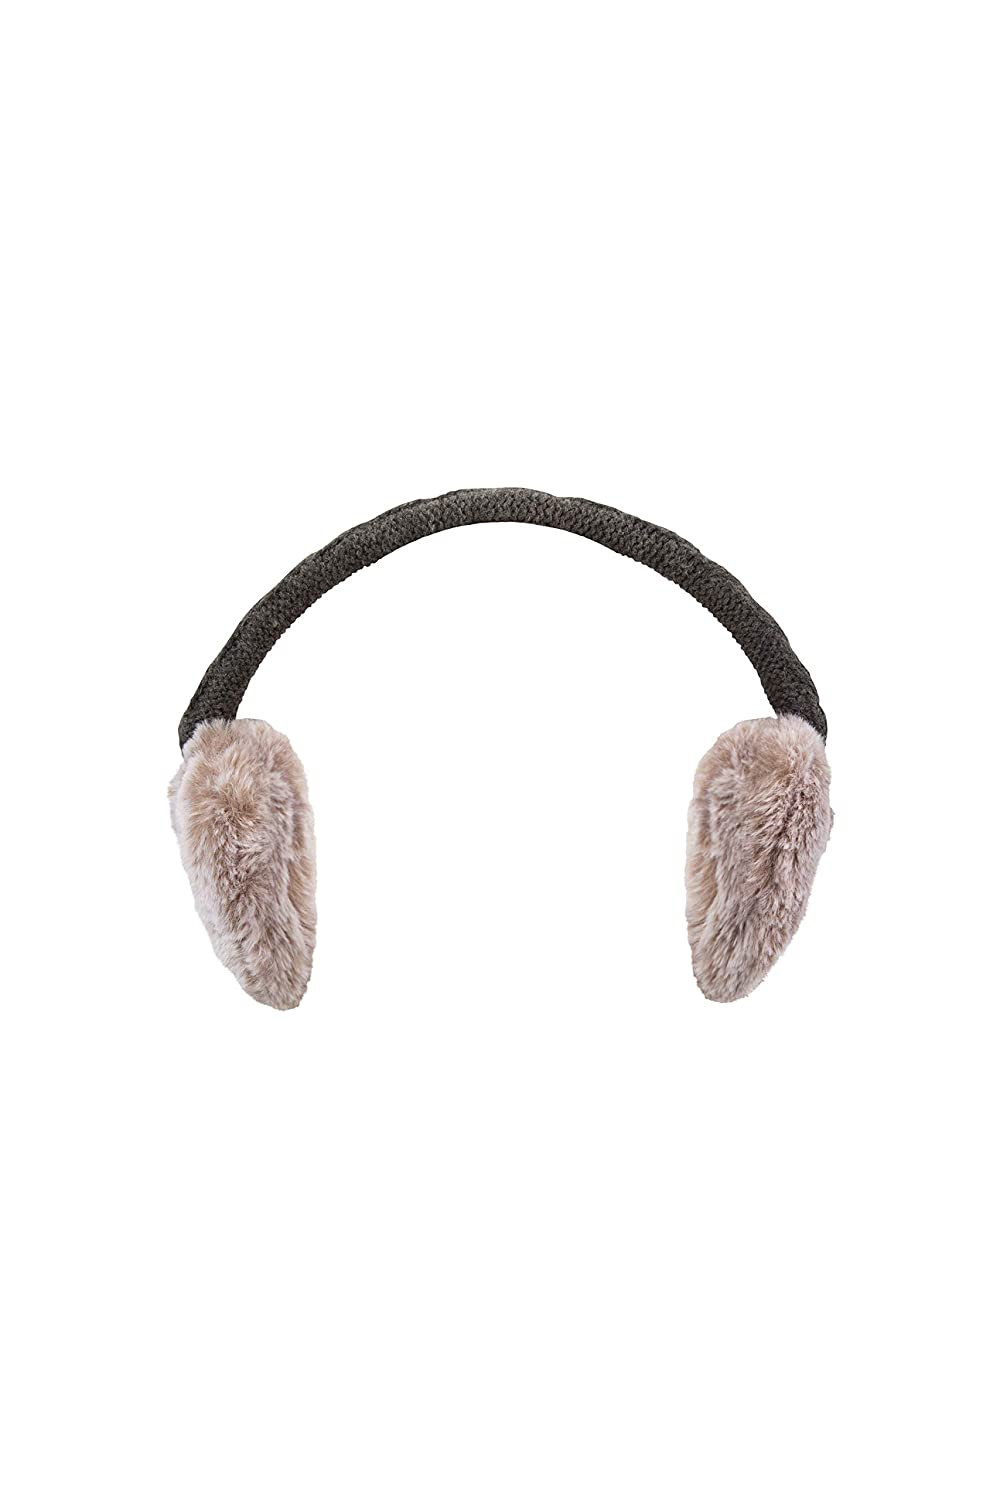 Mountain Warehouse Faux Fur Foldable Earmuffs - Compact, Comfortable & Warm Fluffy Ear Pads Easy to Carry, Adjustable & Foldable Headband - Great Winter Accessory Grey